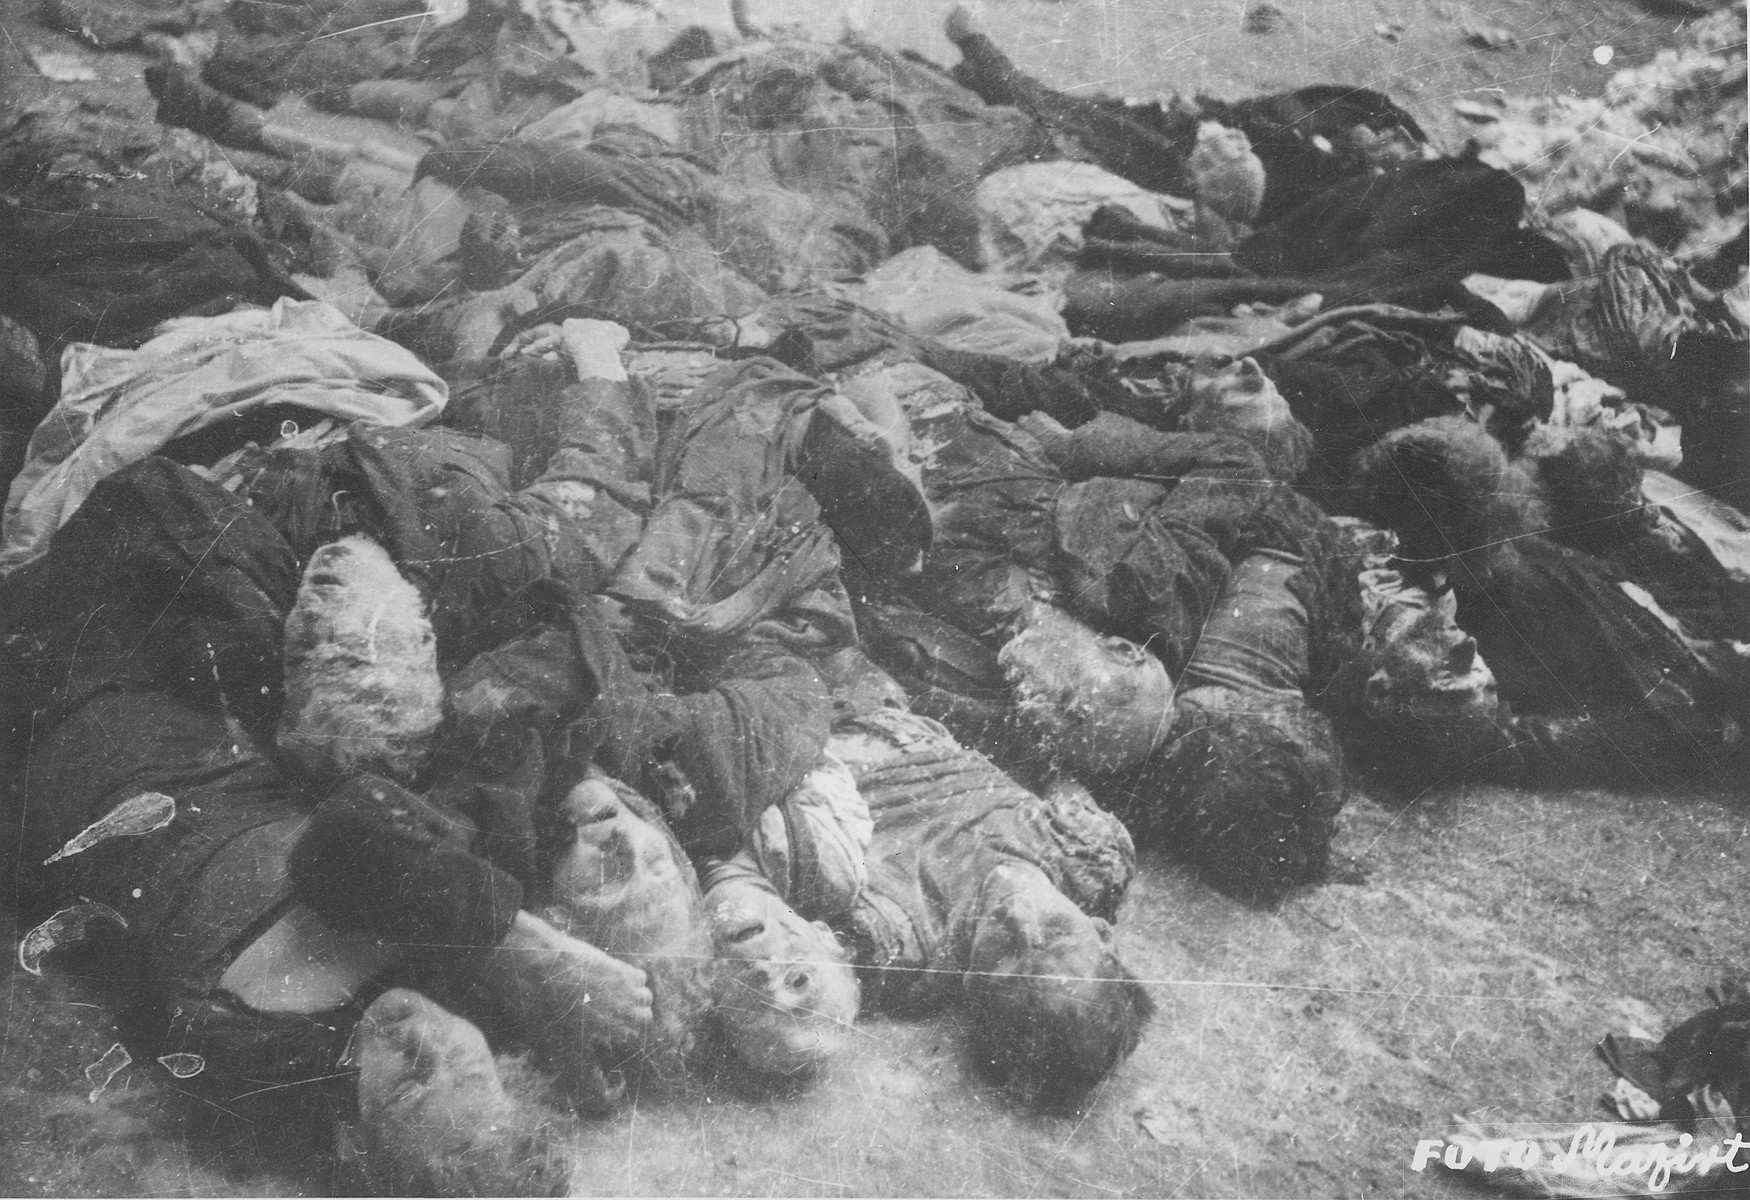 "Corpses of Jews in the courtyard of the Dohany Street Synagogue.  During the last few months of the war in Hungary, the Nyilas (Arrow Cross) exploited the anarchic conditions in the areas still under their control to continue their excesses against the Jews.  This was particularly true in Budapest, despite the fact that the Soviet army had completely encircled the city by December 27, 1944.  The reign of terror that had begun with Szalaszi's assumption of power on October 15, 1944, went almost completely unchecked after the beginning of the Soviet siege on December 9.  Gangs of armed Nyilas--mostly teenagers--roamed the city hunting for Jews in hiding.  They searched them out in hospitals, shelters, homes outside the ghetto, in the International Ghetto, and in the large ghetto.  After robbing the Jews of their remaining valuables, the Nyilas shot them on the spot or marched them to the banks of the Danube, where they shot them, and threw their bodies into the river.  A large number of Jews who were murdered in the ghetto were buried in mass graves in the courtyard of the Dohany Street Synagogue.  The most horrific of these attacks occurred on the Pest side of the capital, at the two Jewish hospitals located on Maros and Varosmajor streets.  The Maros Street hospital, which had operated under the protection of the International Red Cross during the German occupation, was attacked on January 11, 1945.  After the initial melee, during which Nyilas gang members wantonly destroyed hospital equipment, threw patients out of their beds and trampled them, and murdered staff members, survivors were ordered to dig a mass grave, remove and bury the bodies.  They were then shot and buried in the grave themselves.  Only one nurse survived of the 92 people that were in the hospital at the time.  Three days later, on January 14, the hospital on Varosmajor Street was attacked, resulting in the deaths of 150 patients and medical staff.  These manhunts and massacres continued unabated until the liberation of Budapest in April.  [R. Braham, ""The Politics of Genocide,"" vol. 2: 995-1007]"